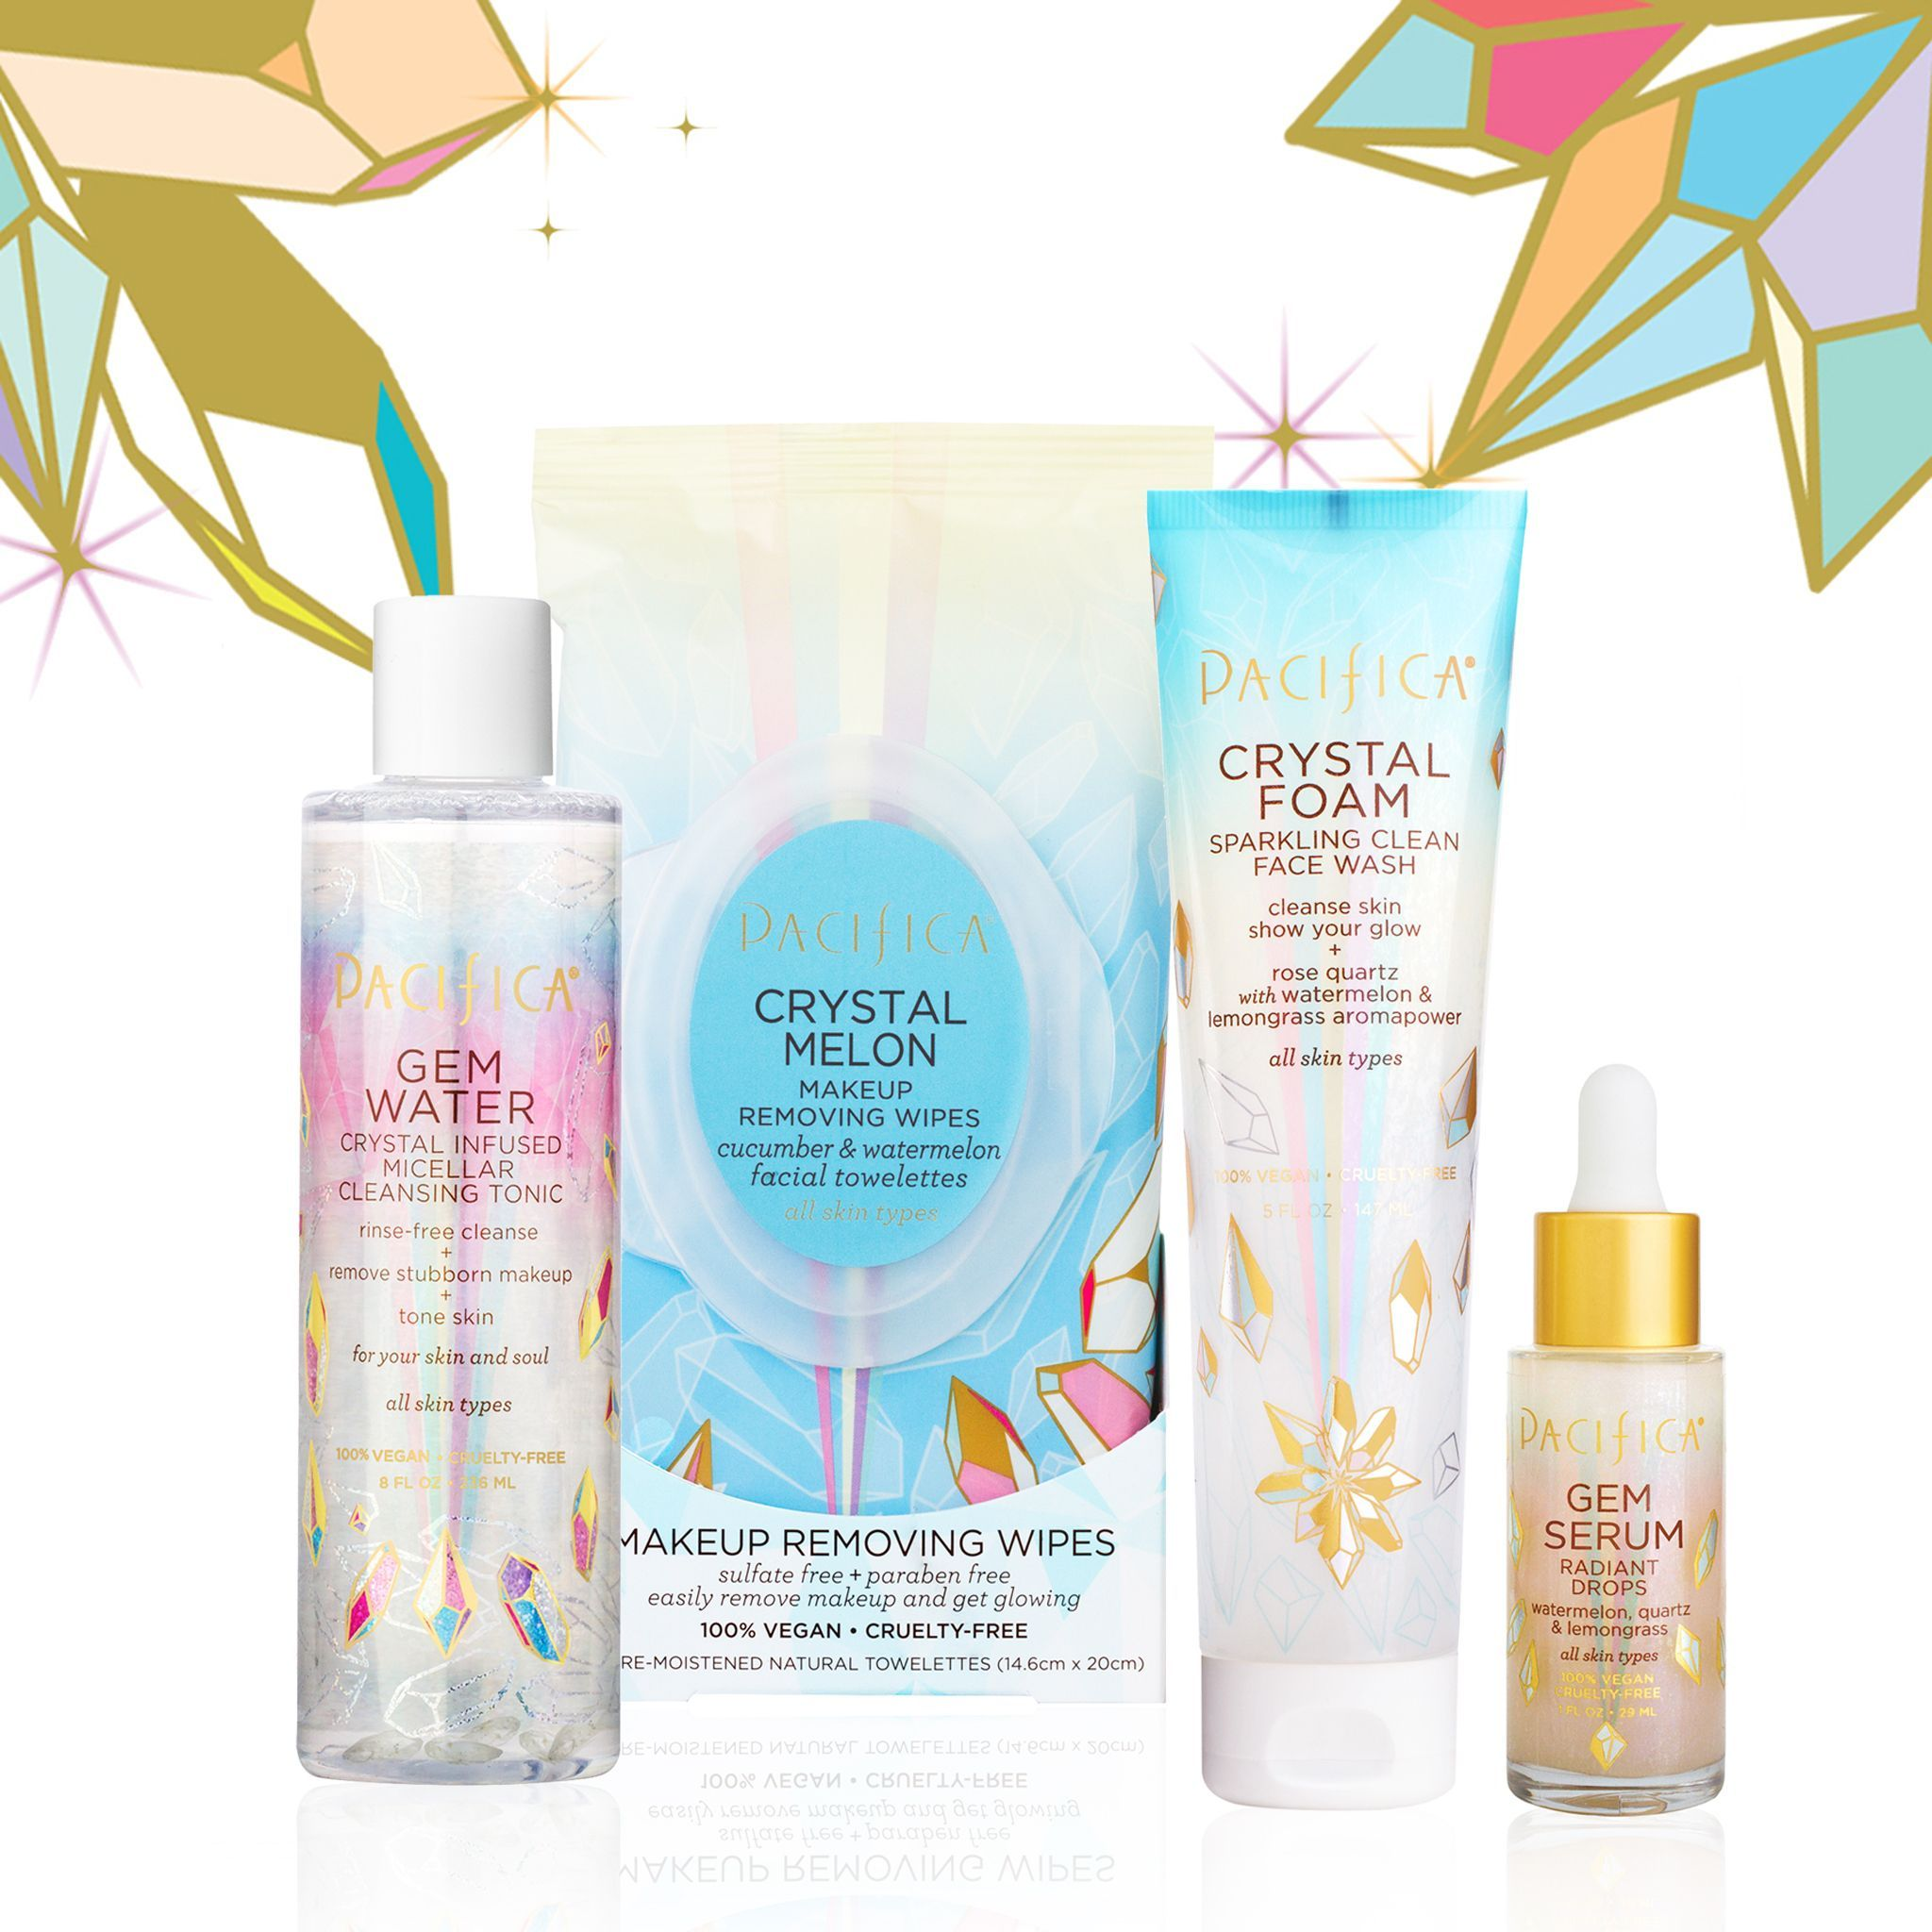 Pacifica Crystal Foam Sparkling Clean Face Wash In 2020 Clean Face Wash Face Wash Cleanser Face Products Skincare